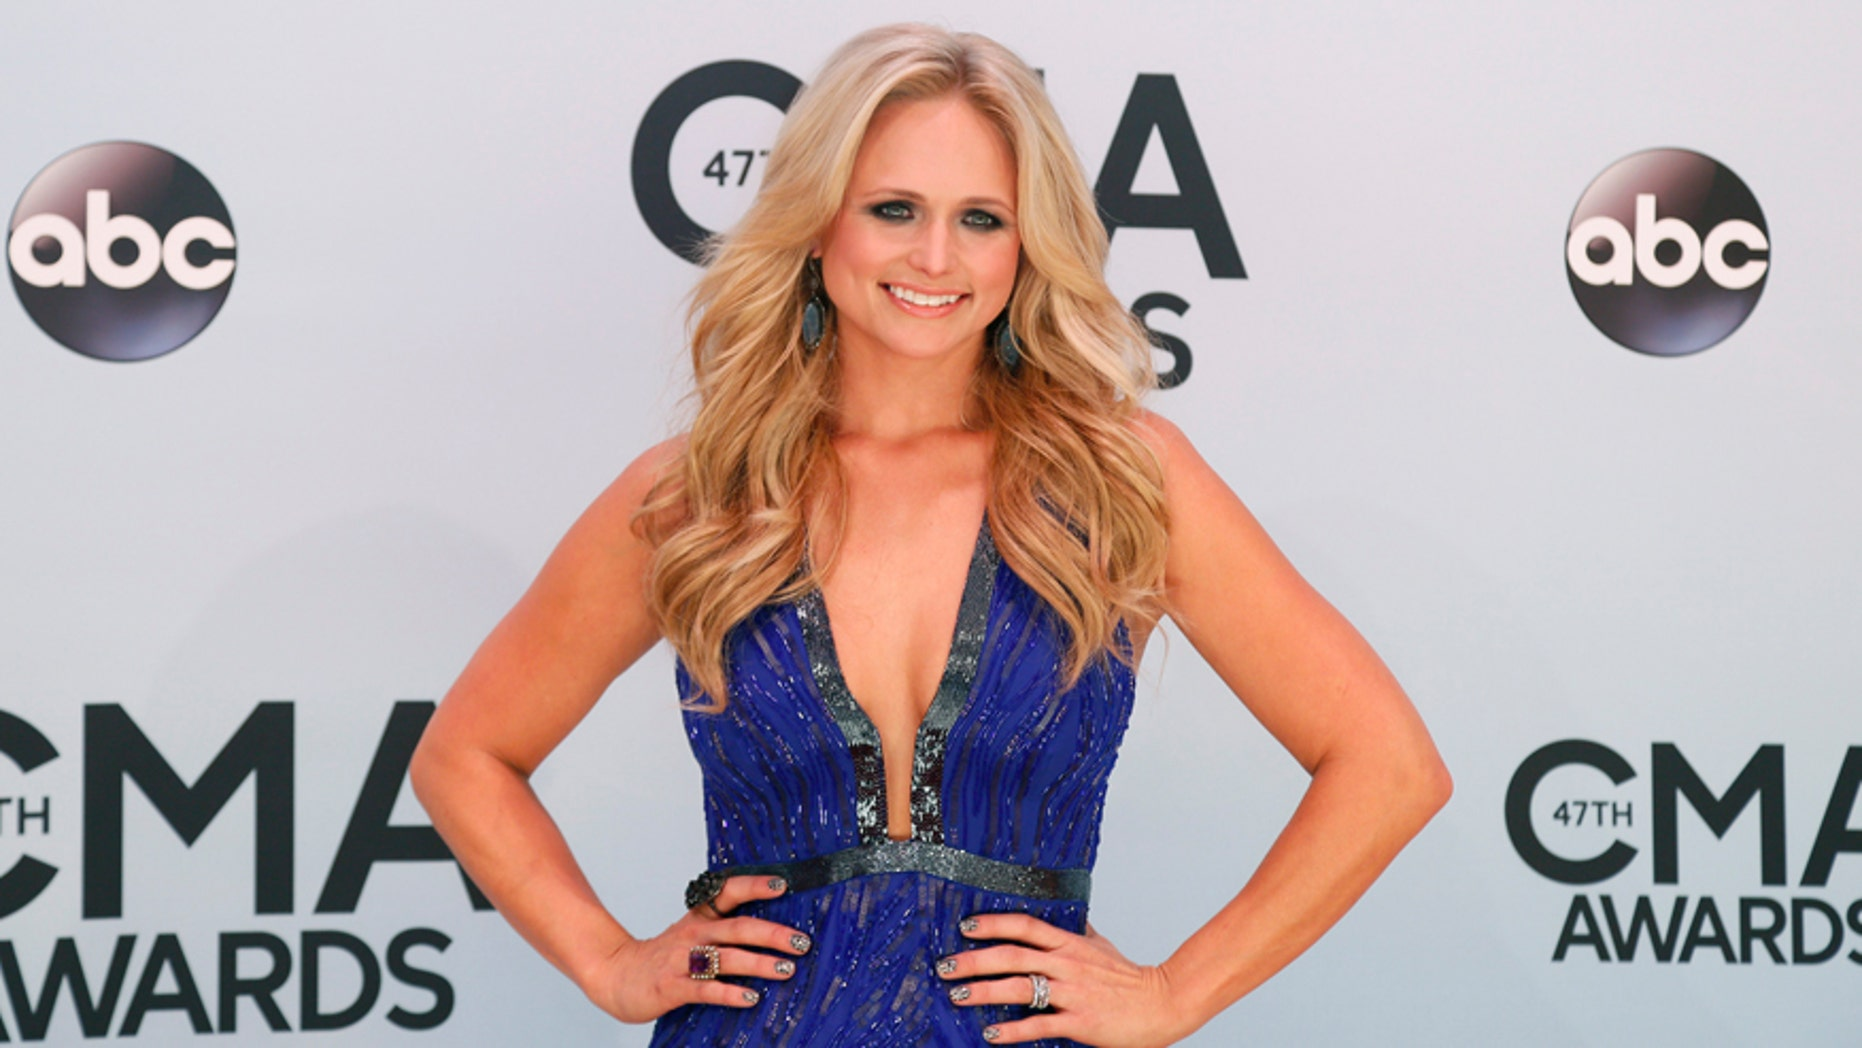 Singer Miranda Lambert arrives at the 47th Country Music Association Awards in Nashville, Tennessee November 6, 2013.     REUTERS/Eric Henderson (UNITED STATES  - Tags: ENTERTAINMENT)   - RTX1532N